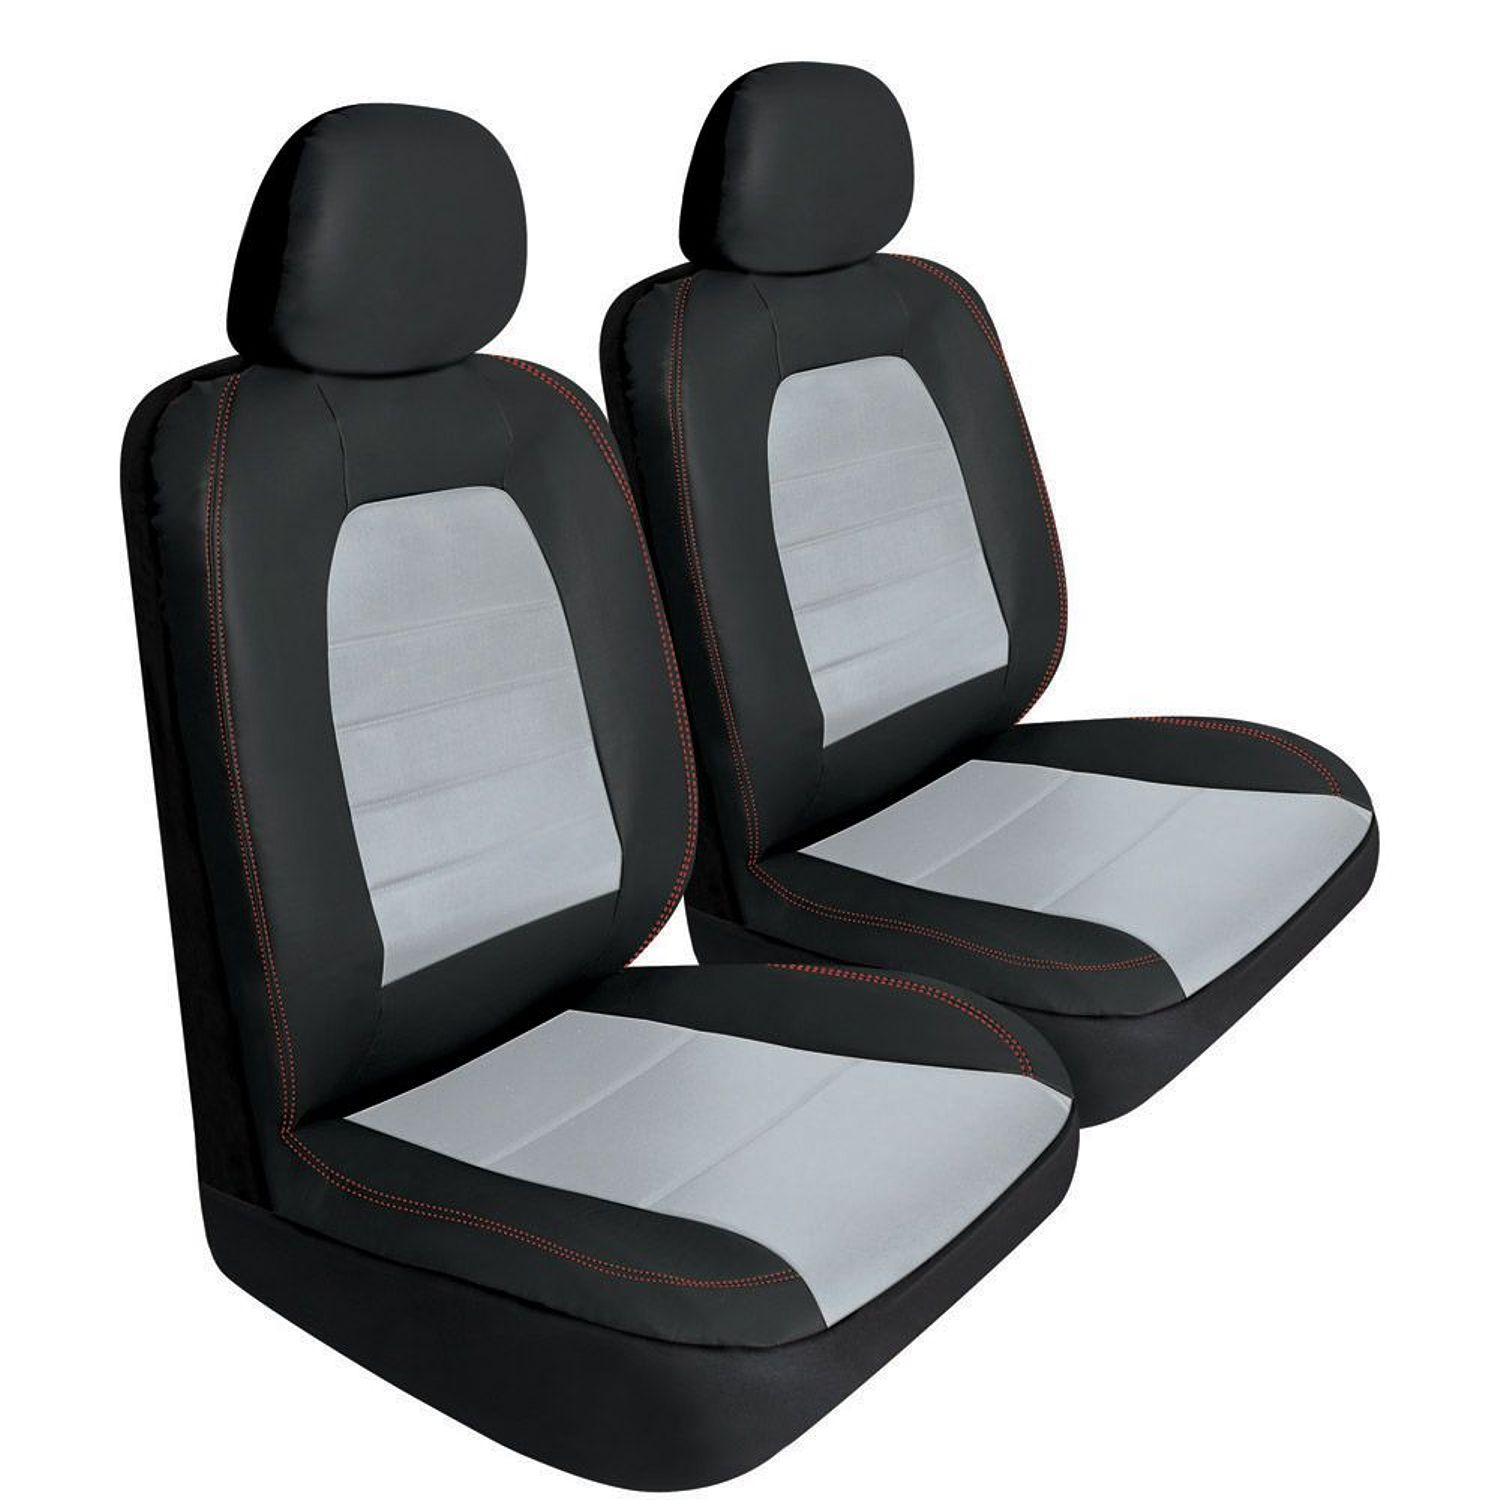 6-piece Set Super Sport Synthetic Leather Car Auto Seat Cover - Black/Gray (Breathable & Durable)